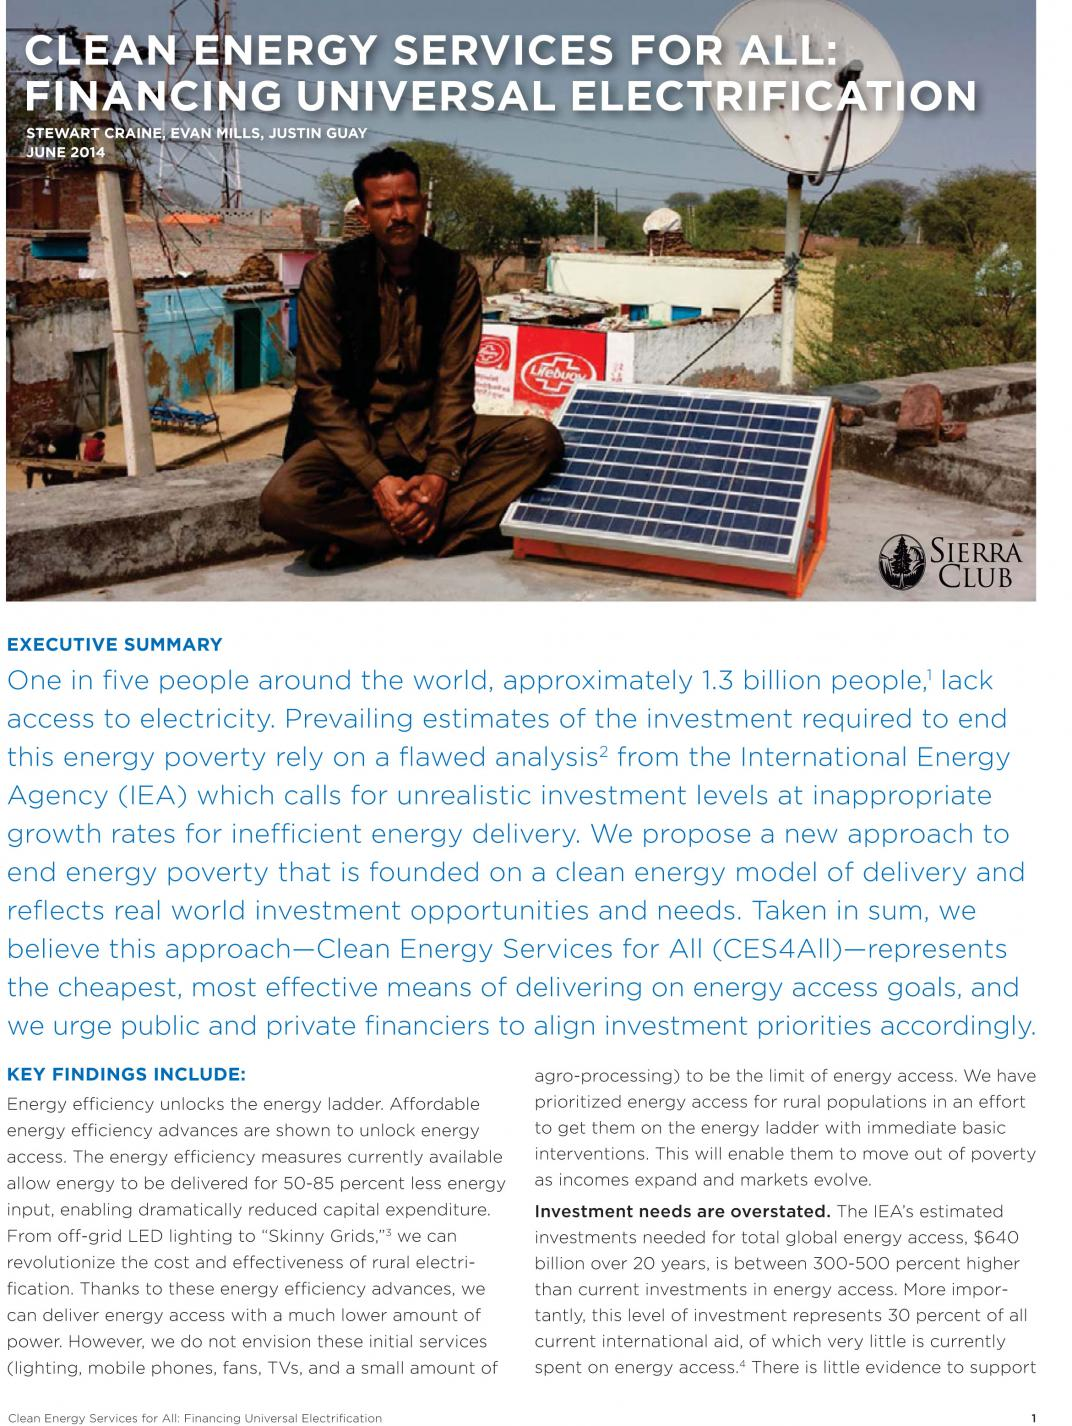 Clean Energy Services for All